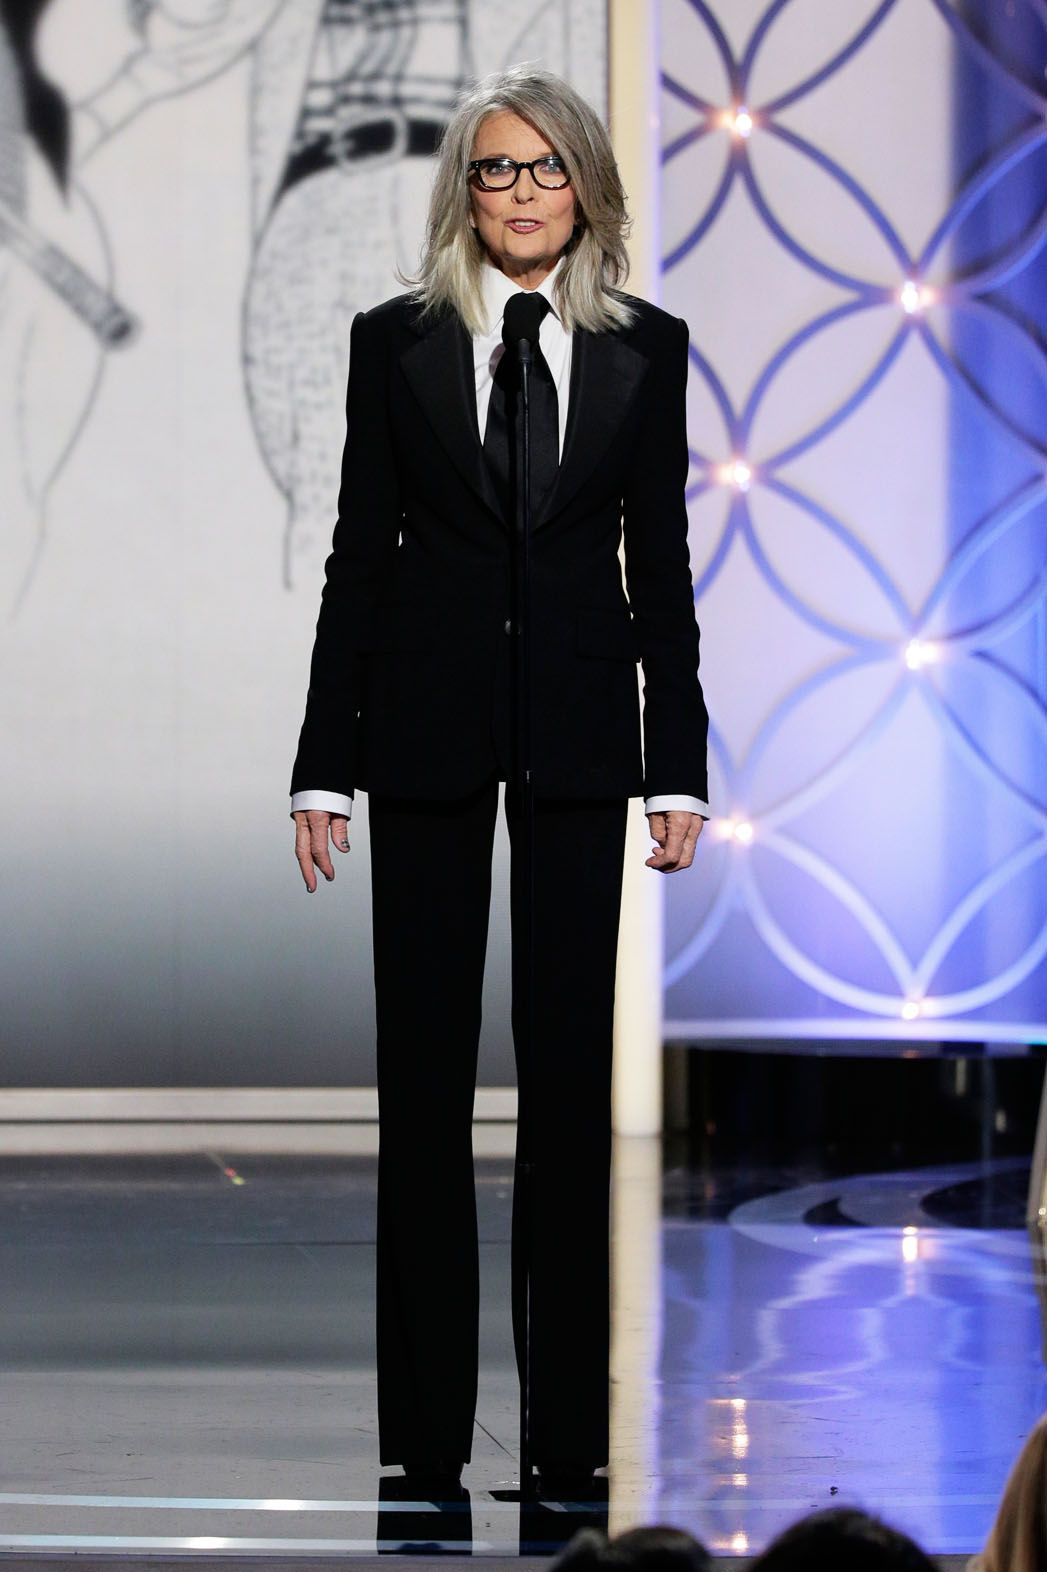 Golden Globes: Diane Keaton Accepts Woody Allen's Cecil B. DeMille Award -  The Hollywood Reporter